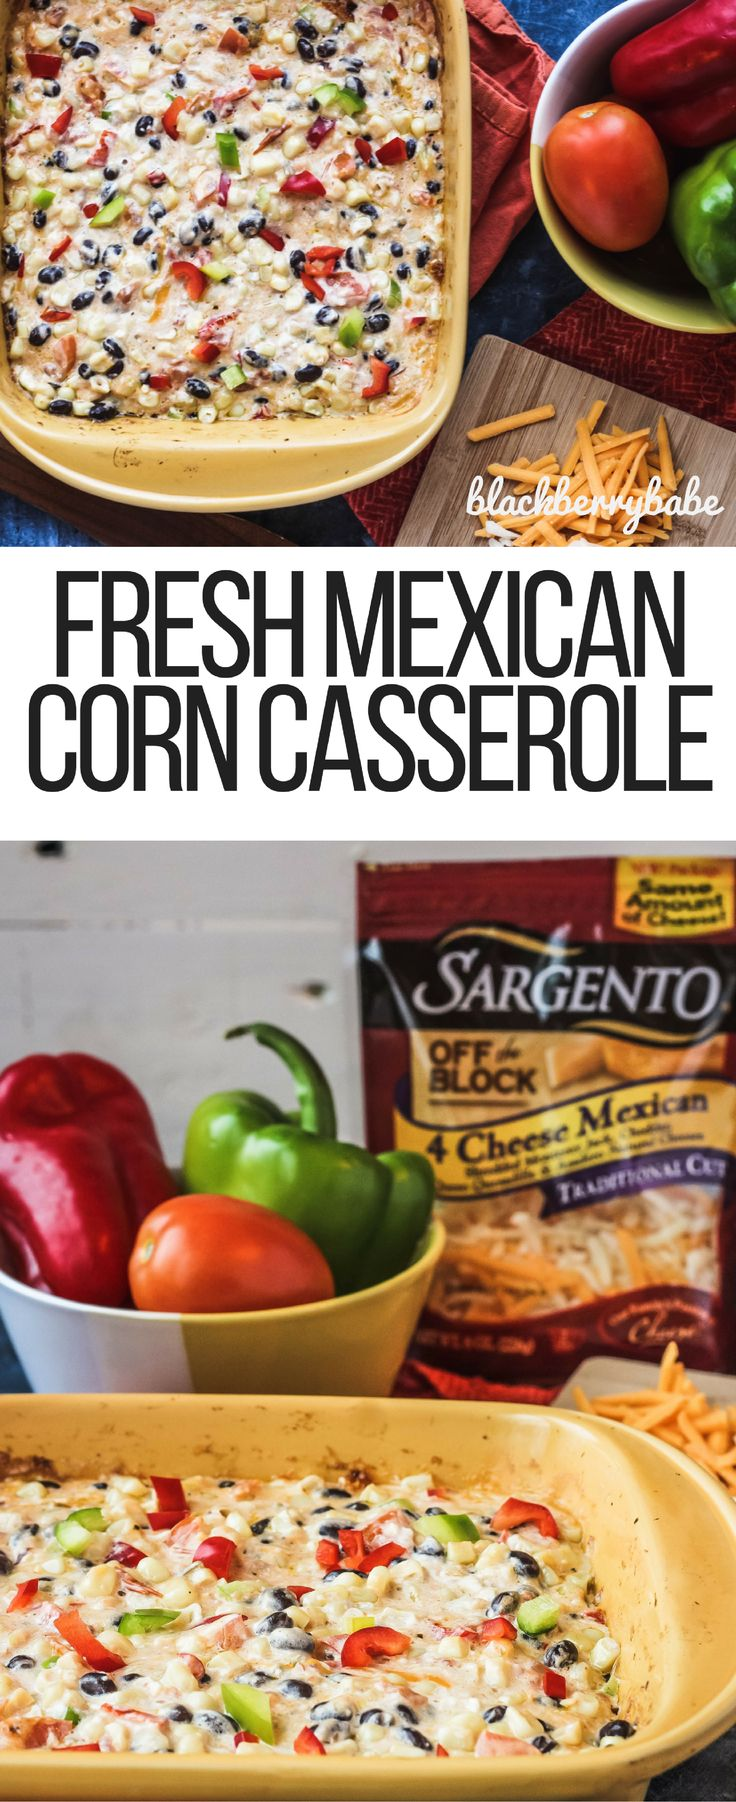 #ad Fresh Mexican Corn Casserole made with @SargentoCheese  Mexican Corn Bake  Cheesy Corn  Cheesy Side Dish   Cheesy Corn Casserole  Cream Cheese Corn Casserole   Corn Side Dish   Baked Corn  AD  #RealCheesePeople #IC